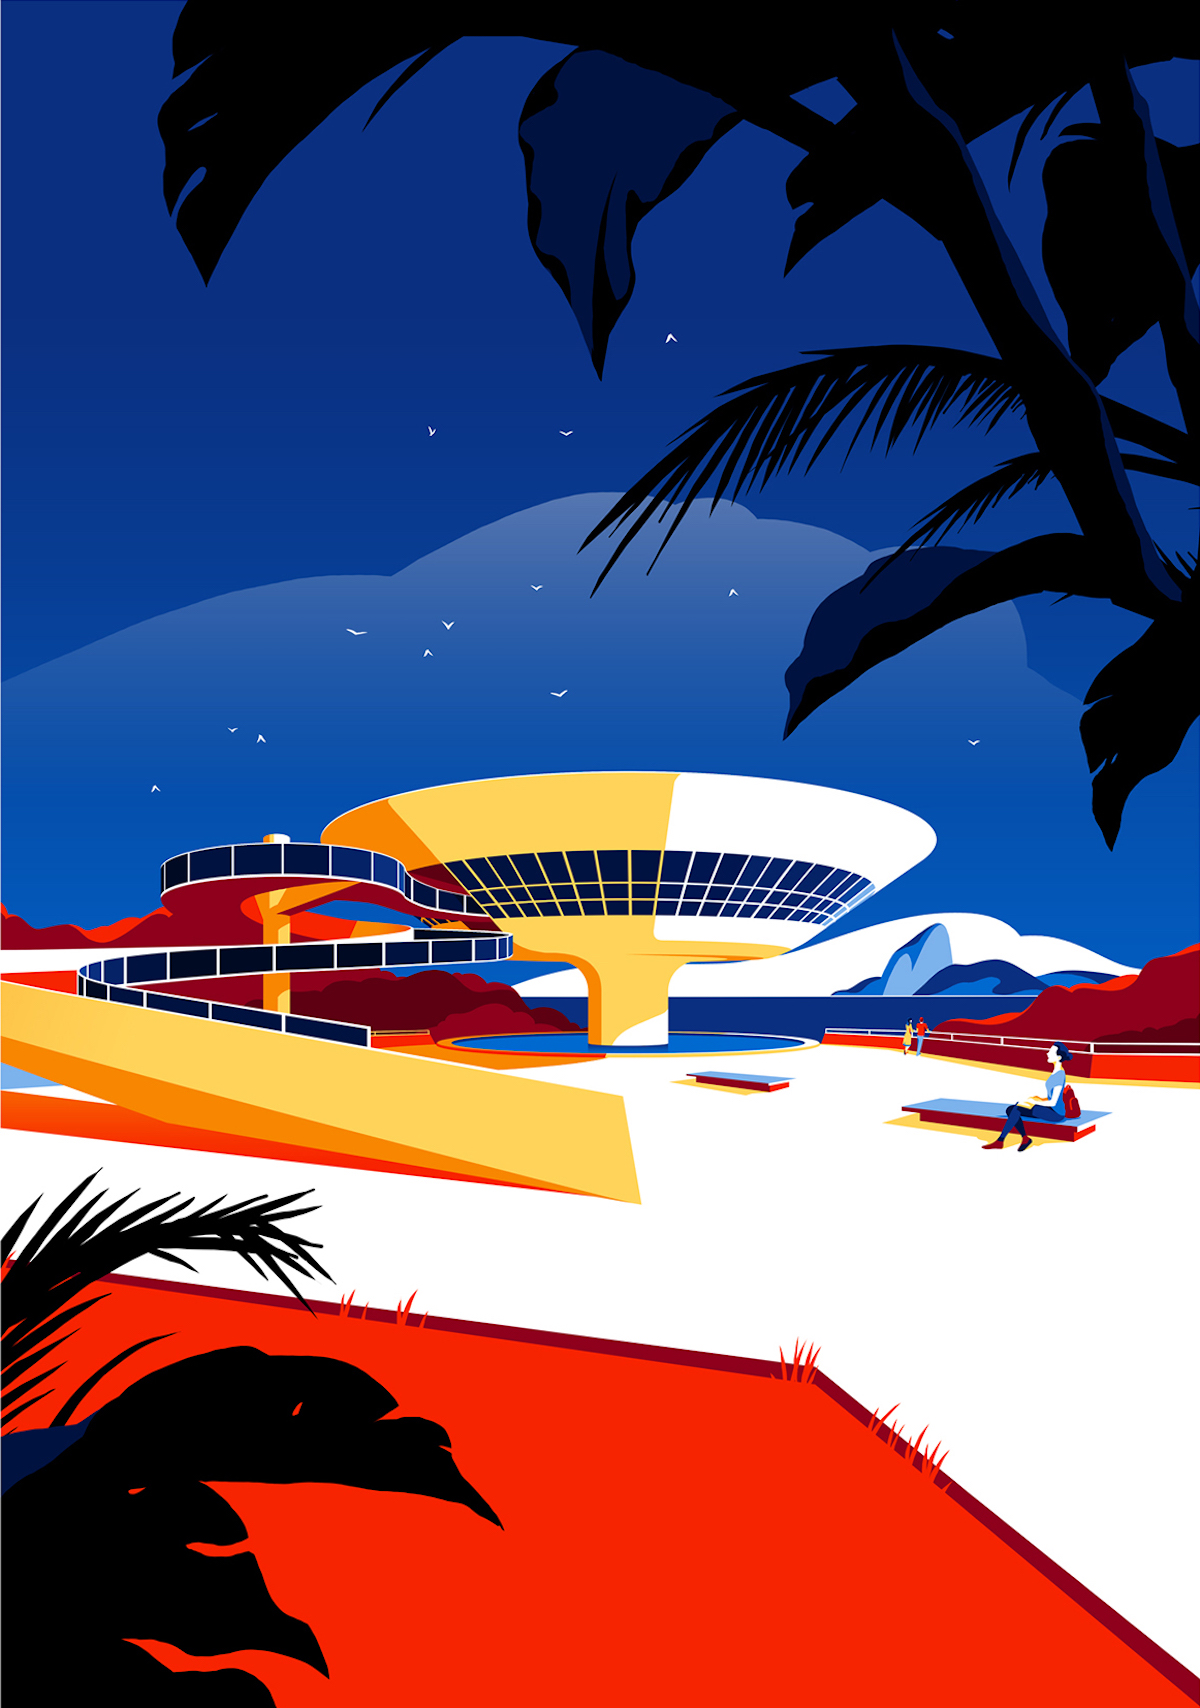 oscar-niemeyer-architecture-illustrations-levente-szabo-11-1